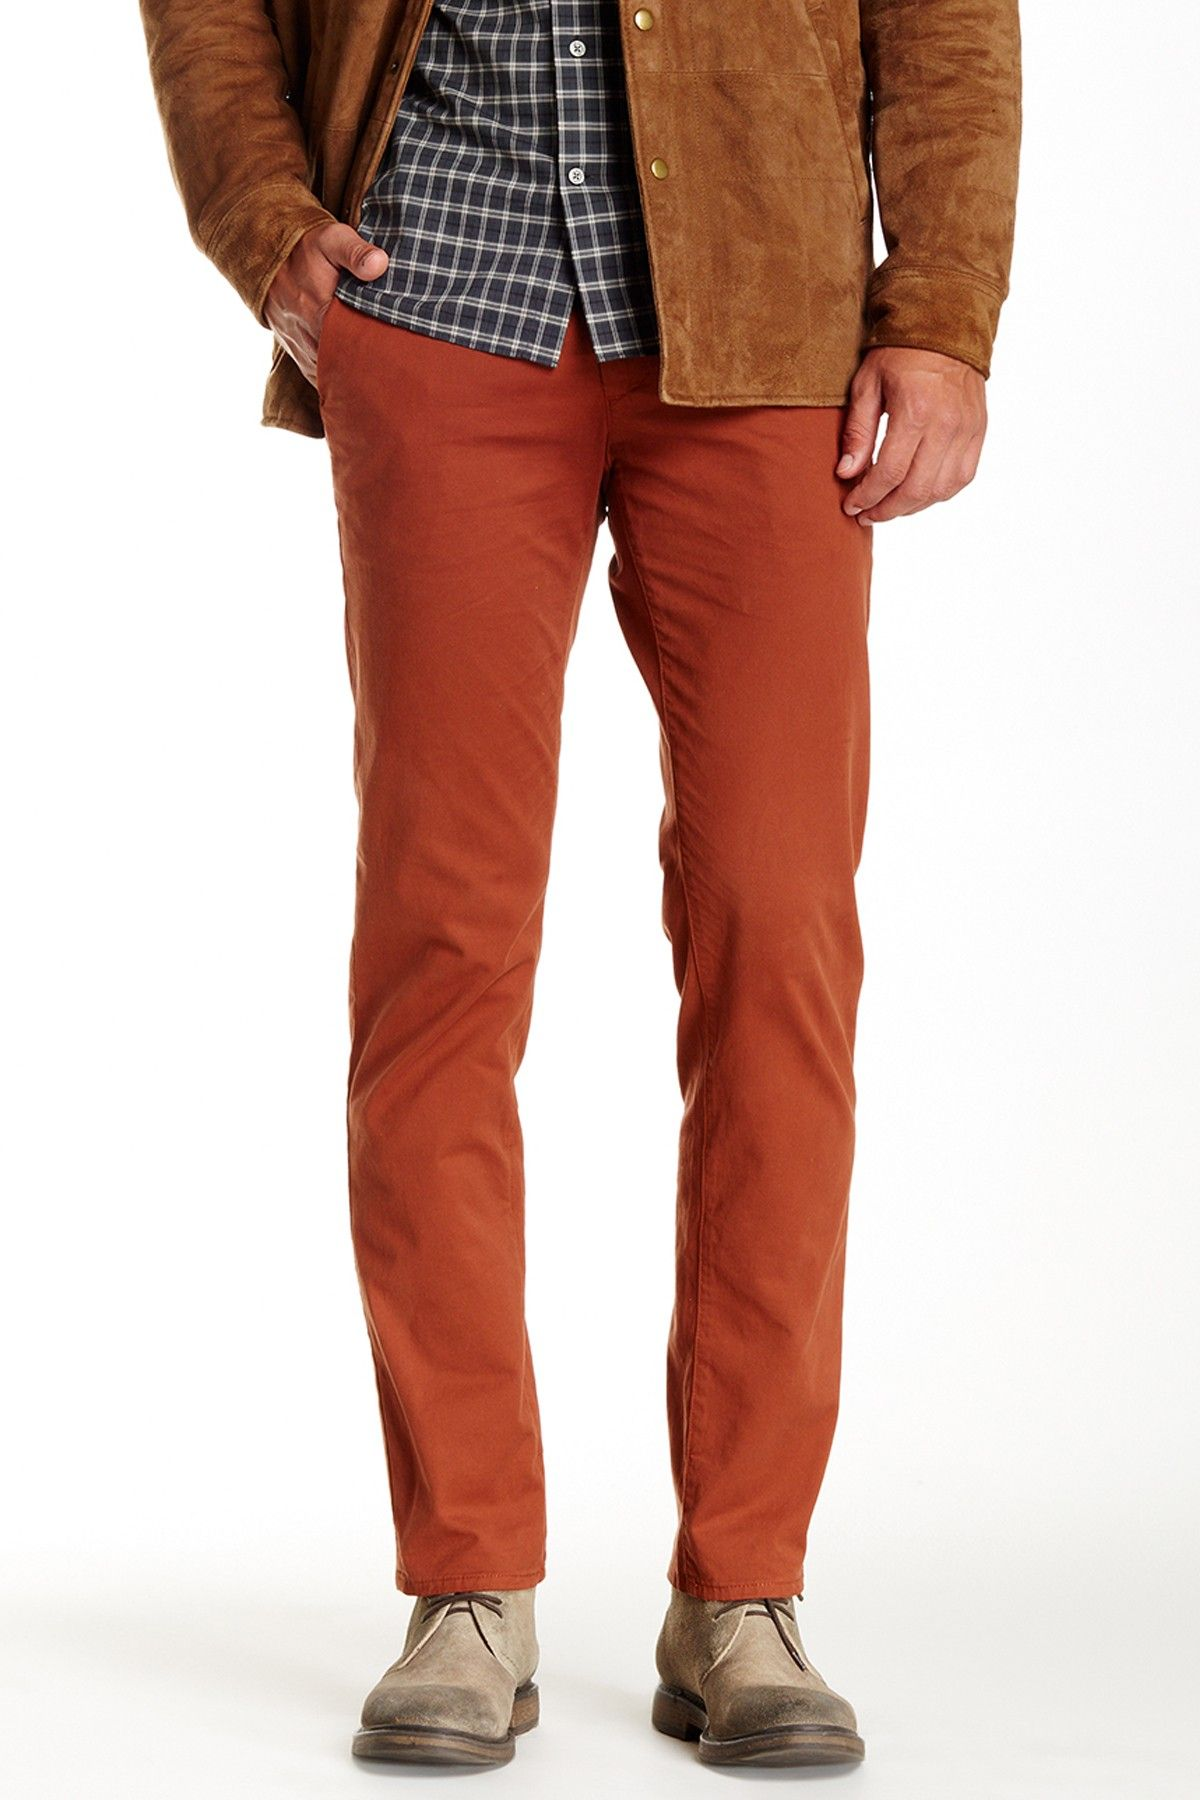 Love These Rust Colored Ag Slim Leg Pants